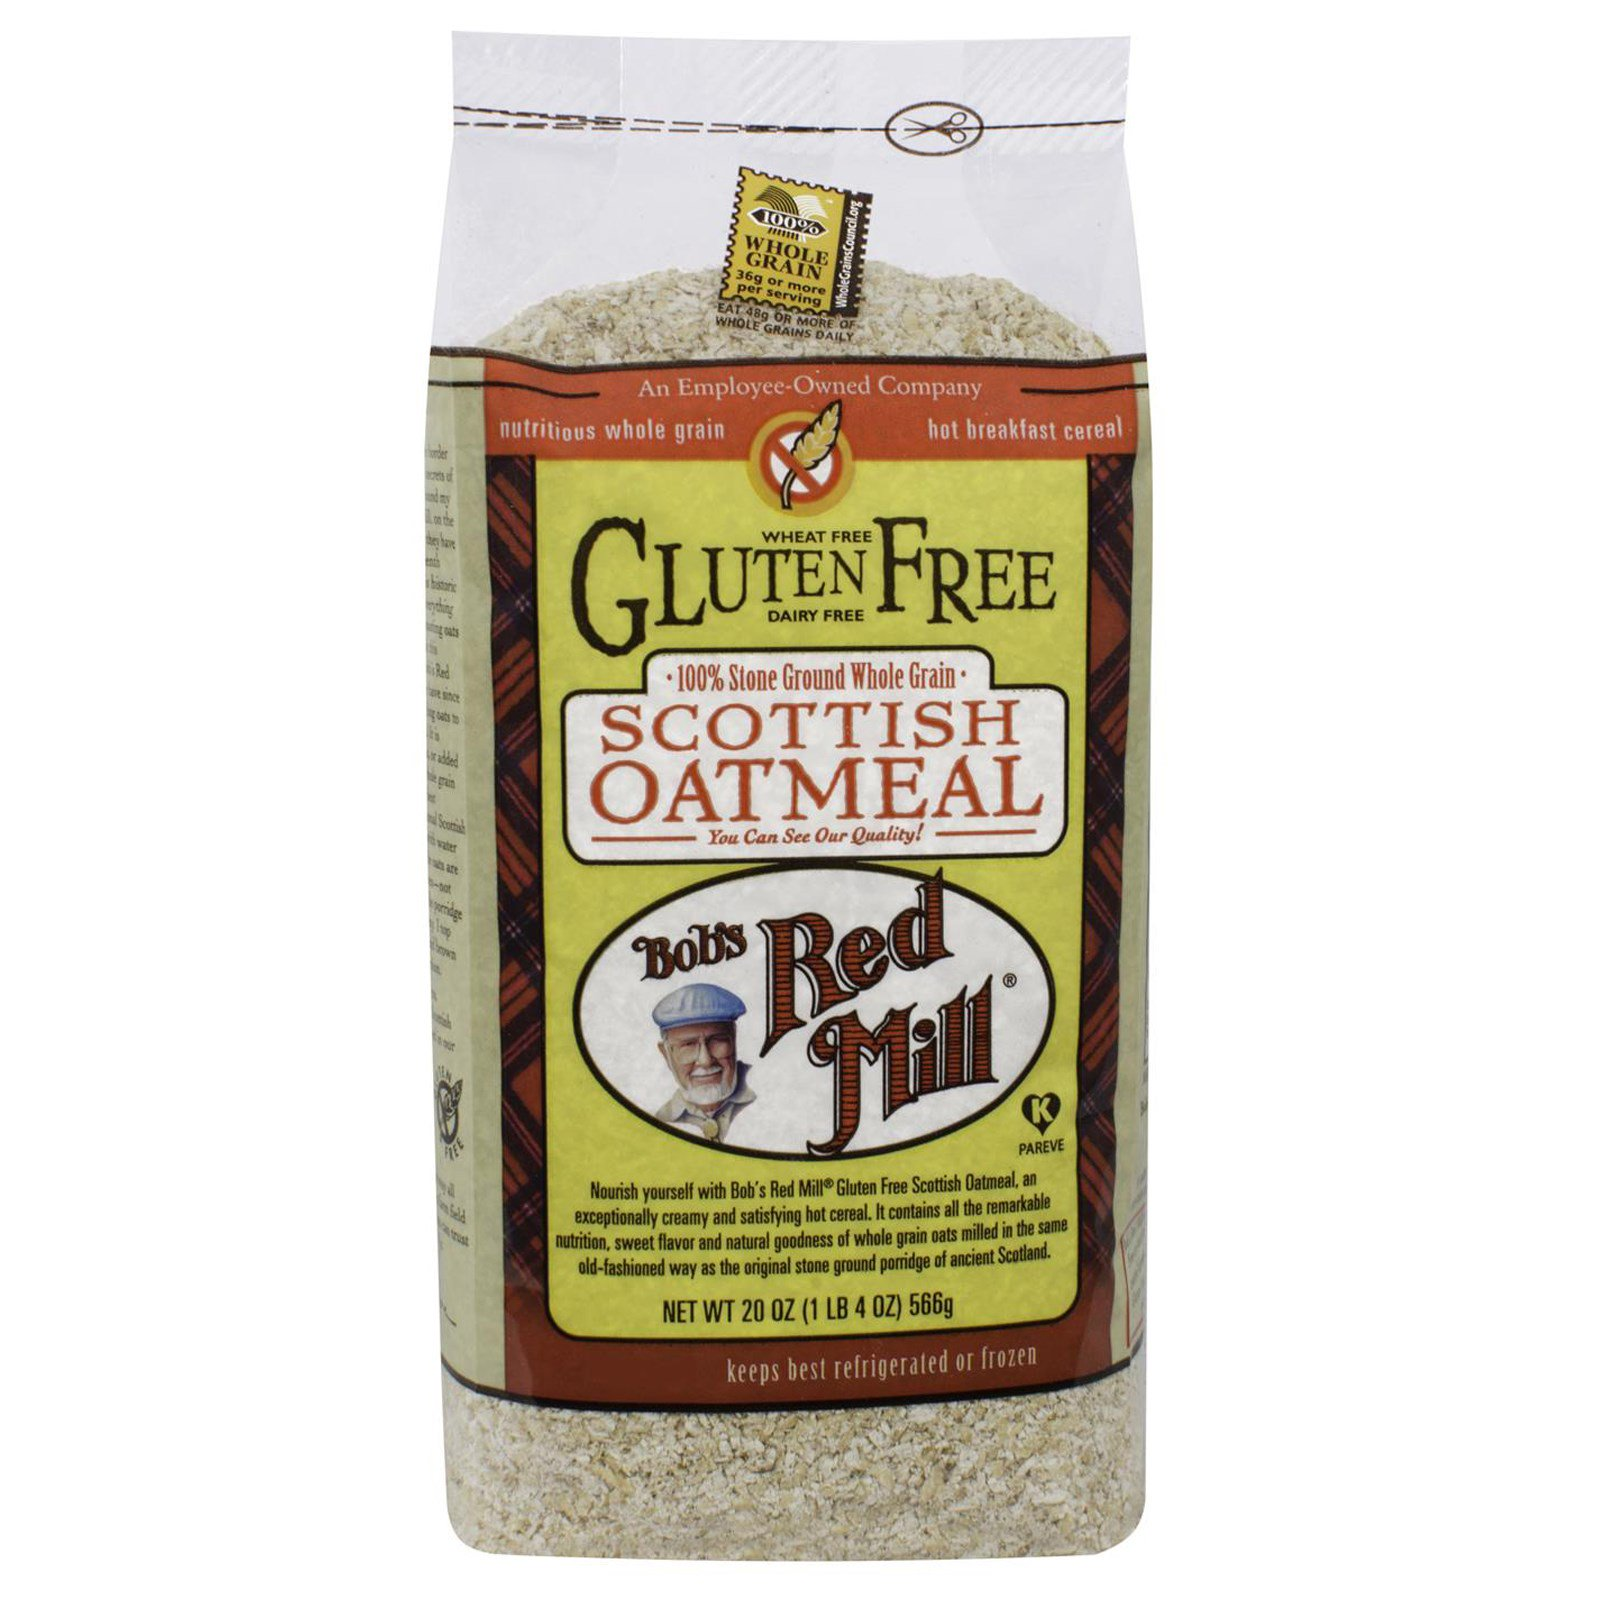 Bob's Red Mill, Gluten Free Scottish Oatmeal, 20 oz (565 g)